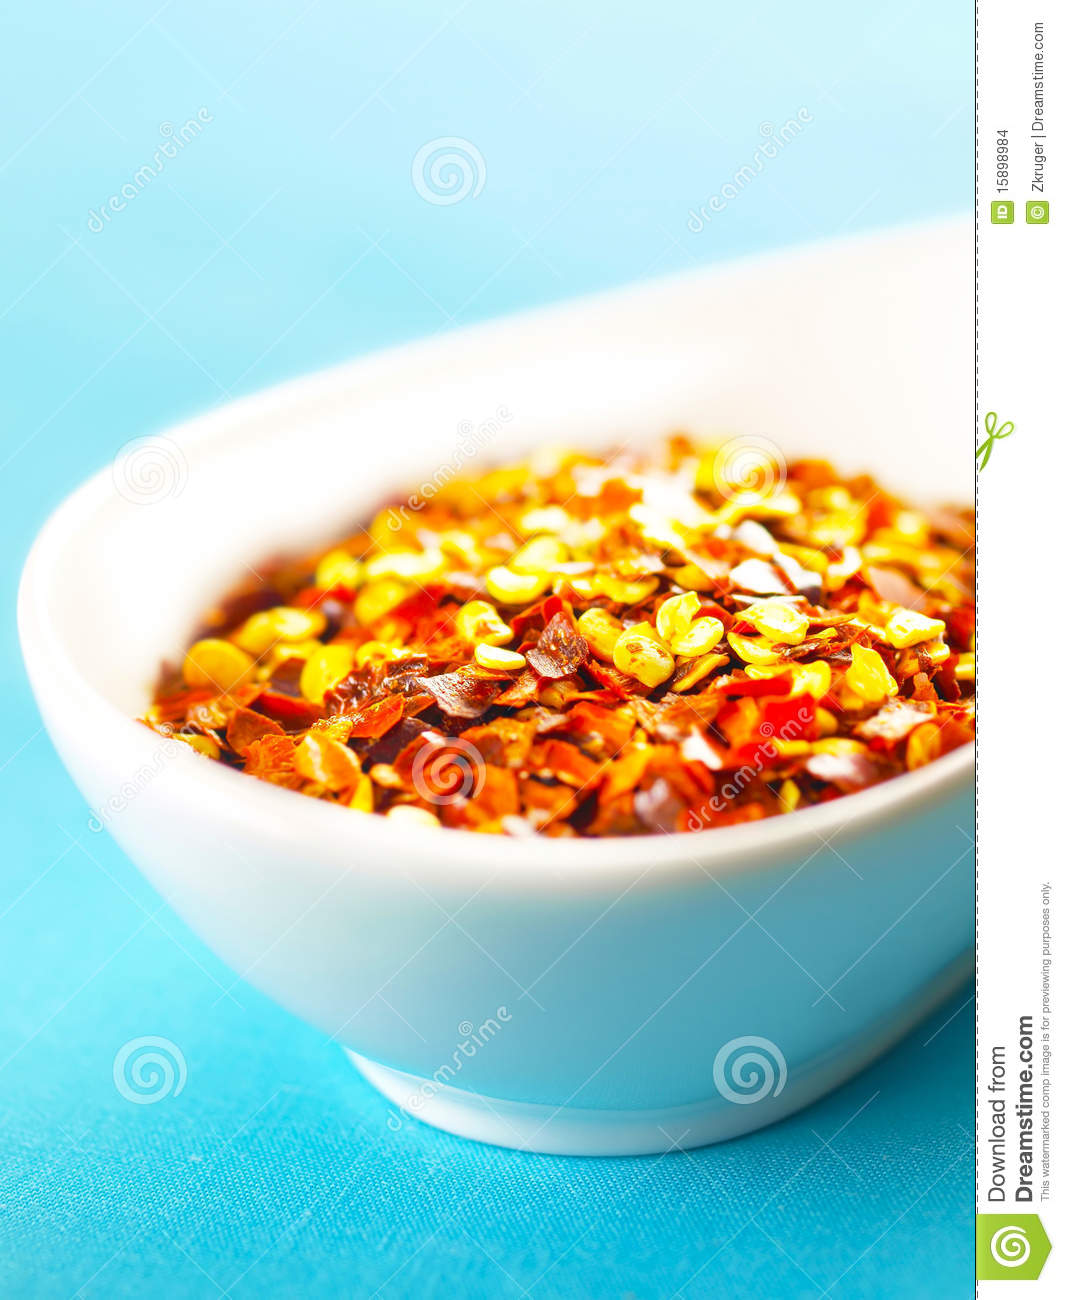 Red chili flakes stock images image 15898984 for Chili flakes